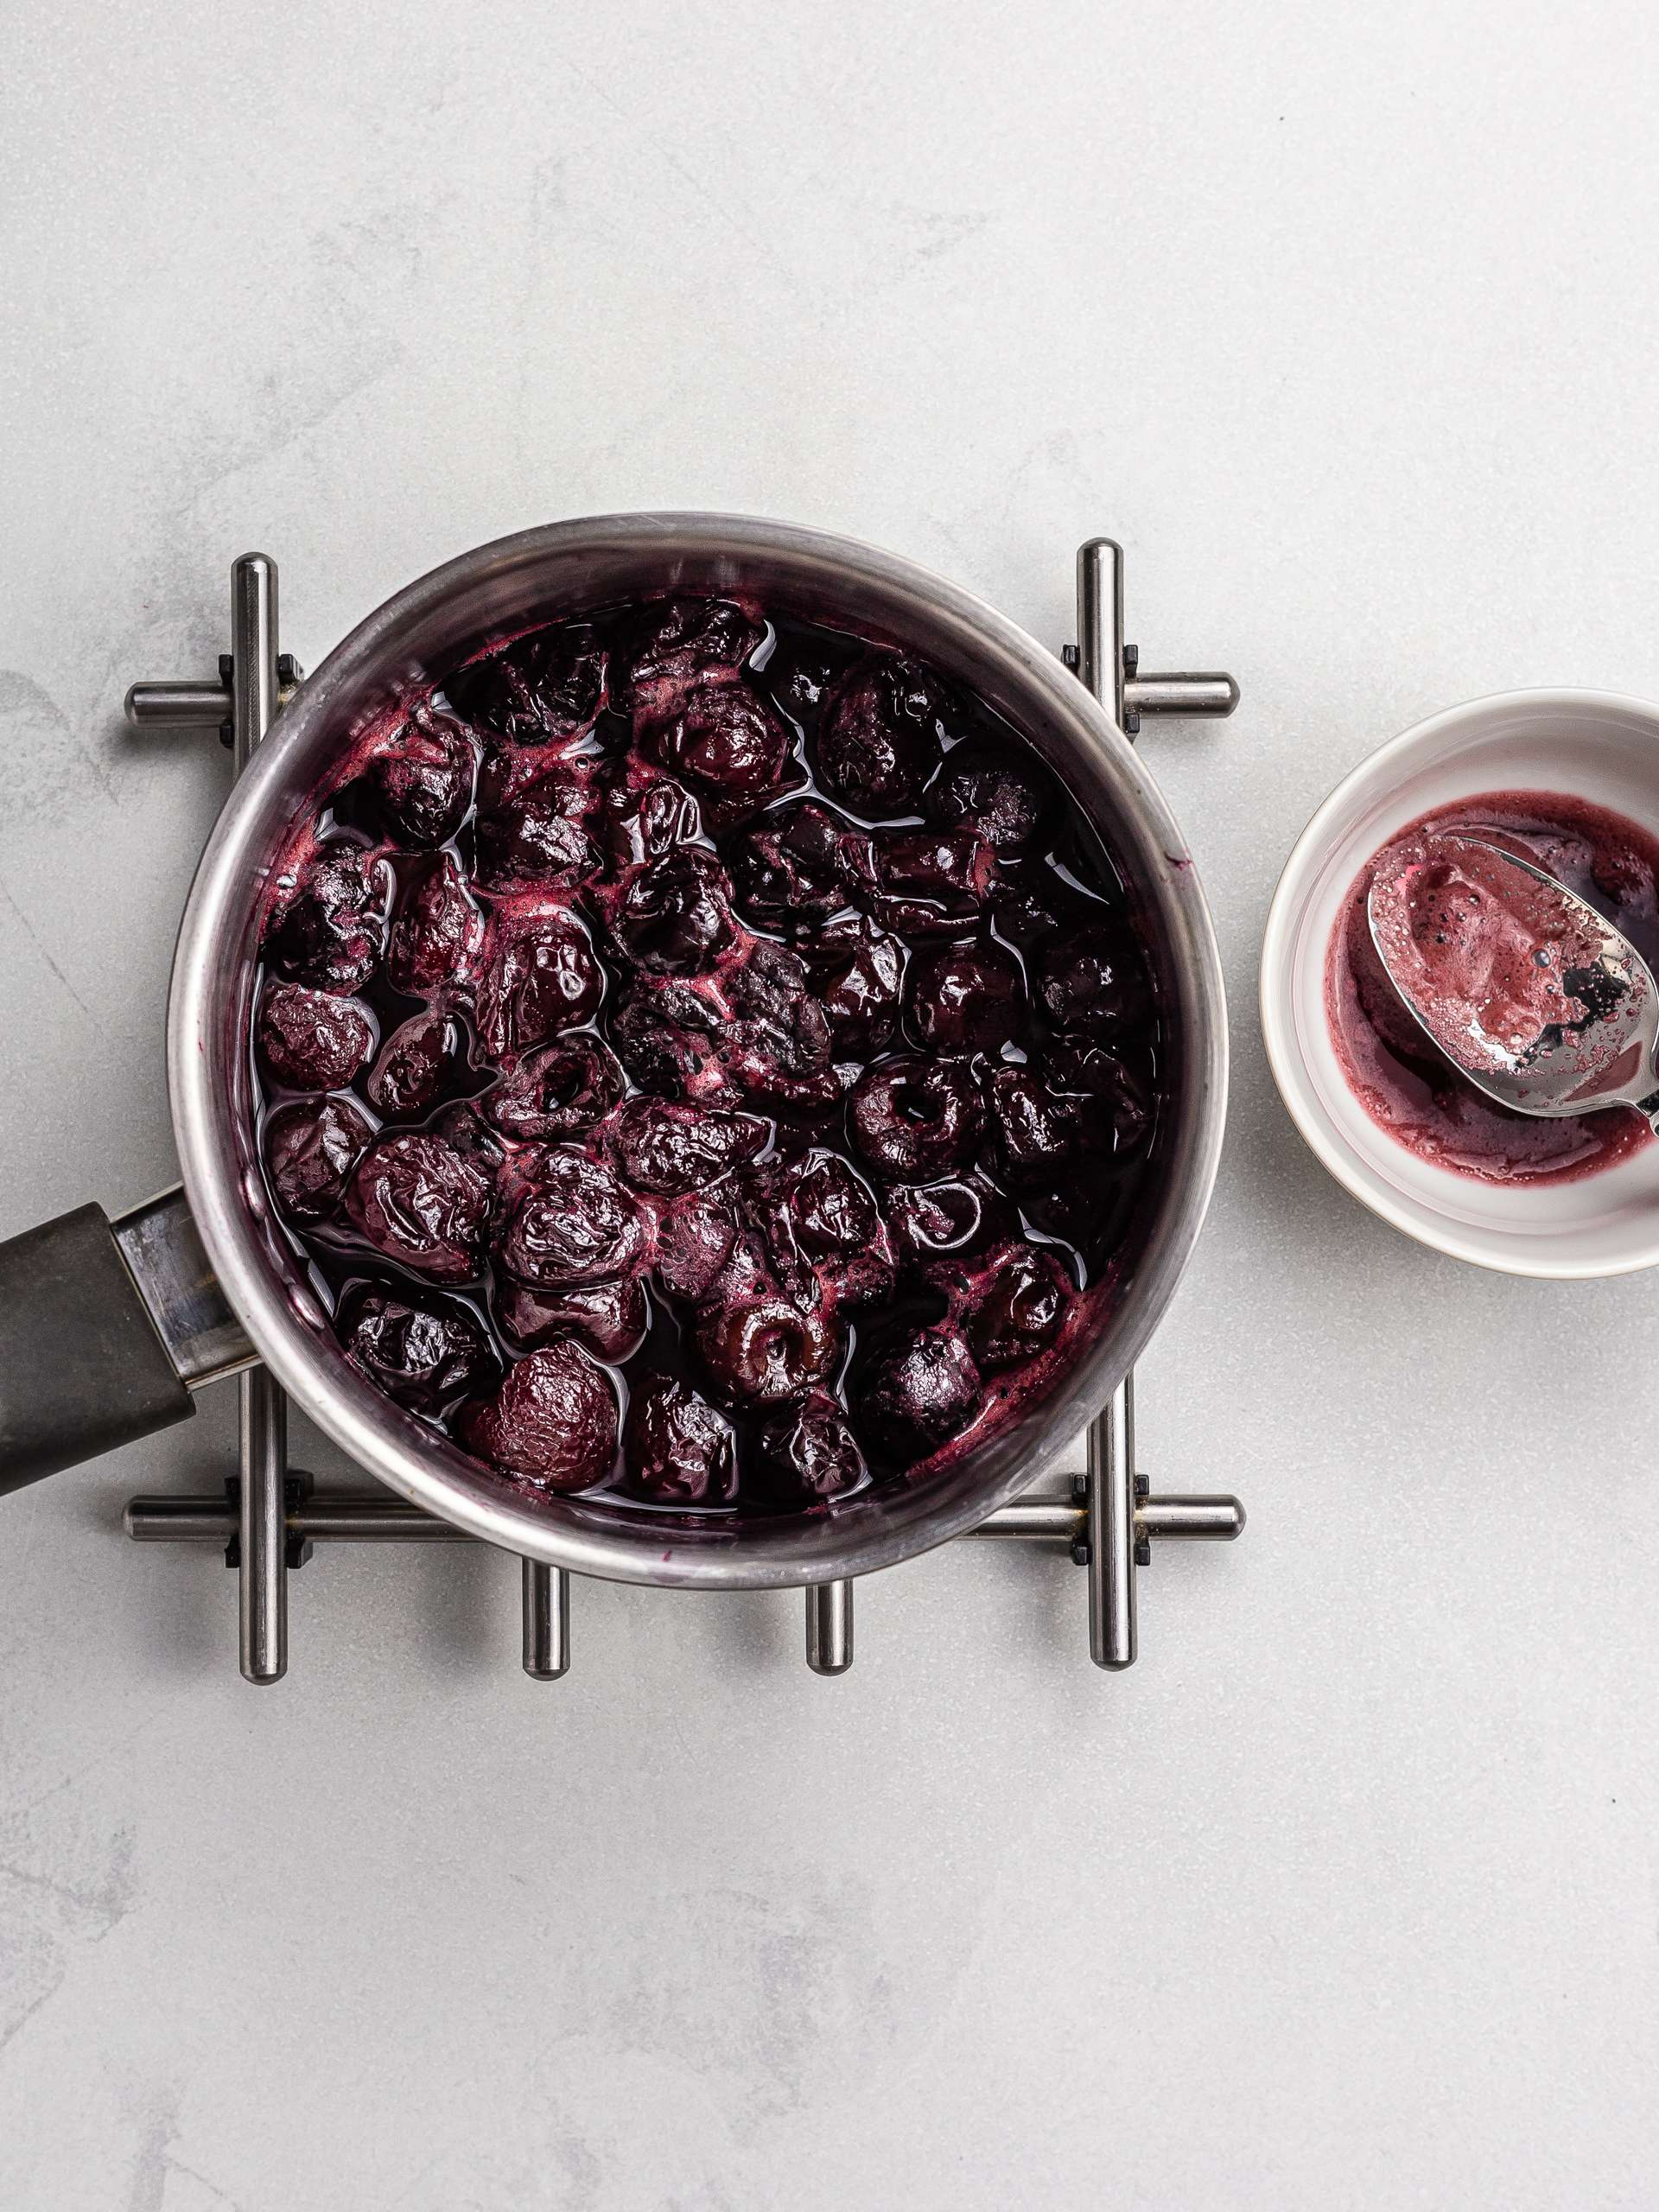 cherries cooking with water in a pot